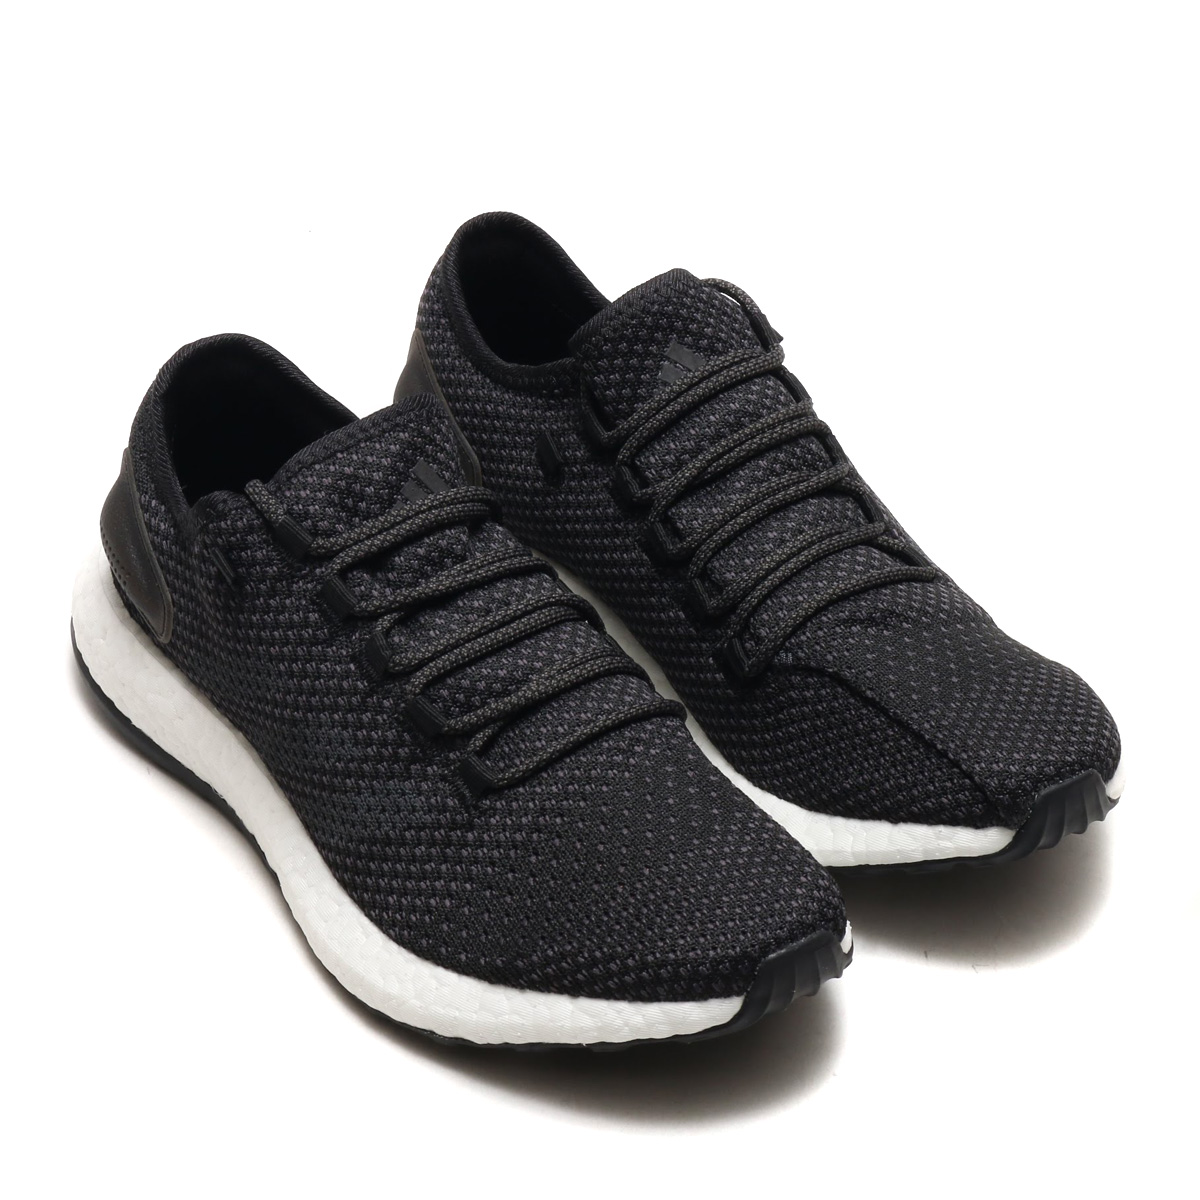 more photos 0adb8 b51f1 adidas Originals PureBOOST CLIMA (アディダスオリジナルスピュアブーストクライマ) (core black /  carbon S18/ carbon S18) 18SS-I